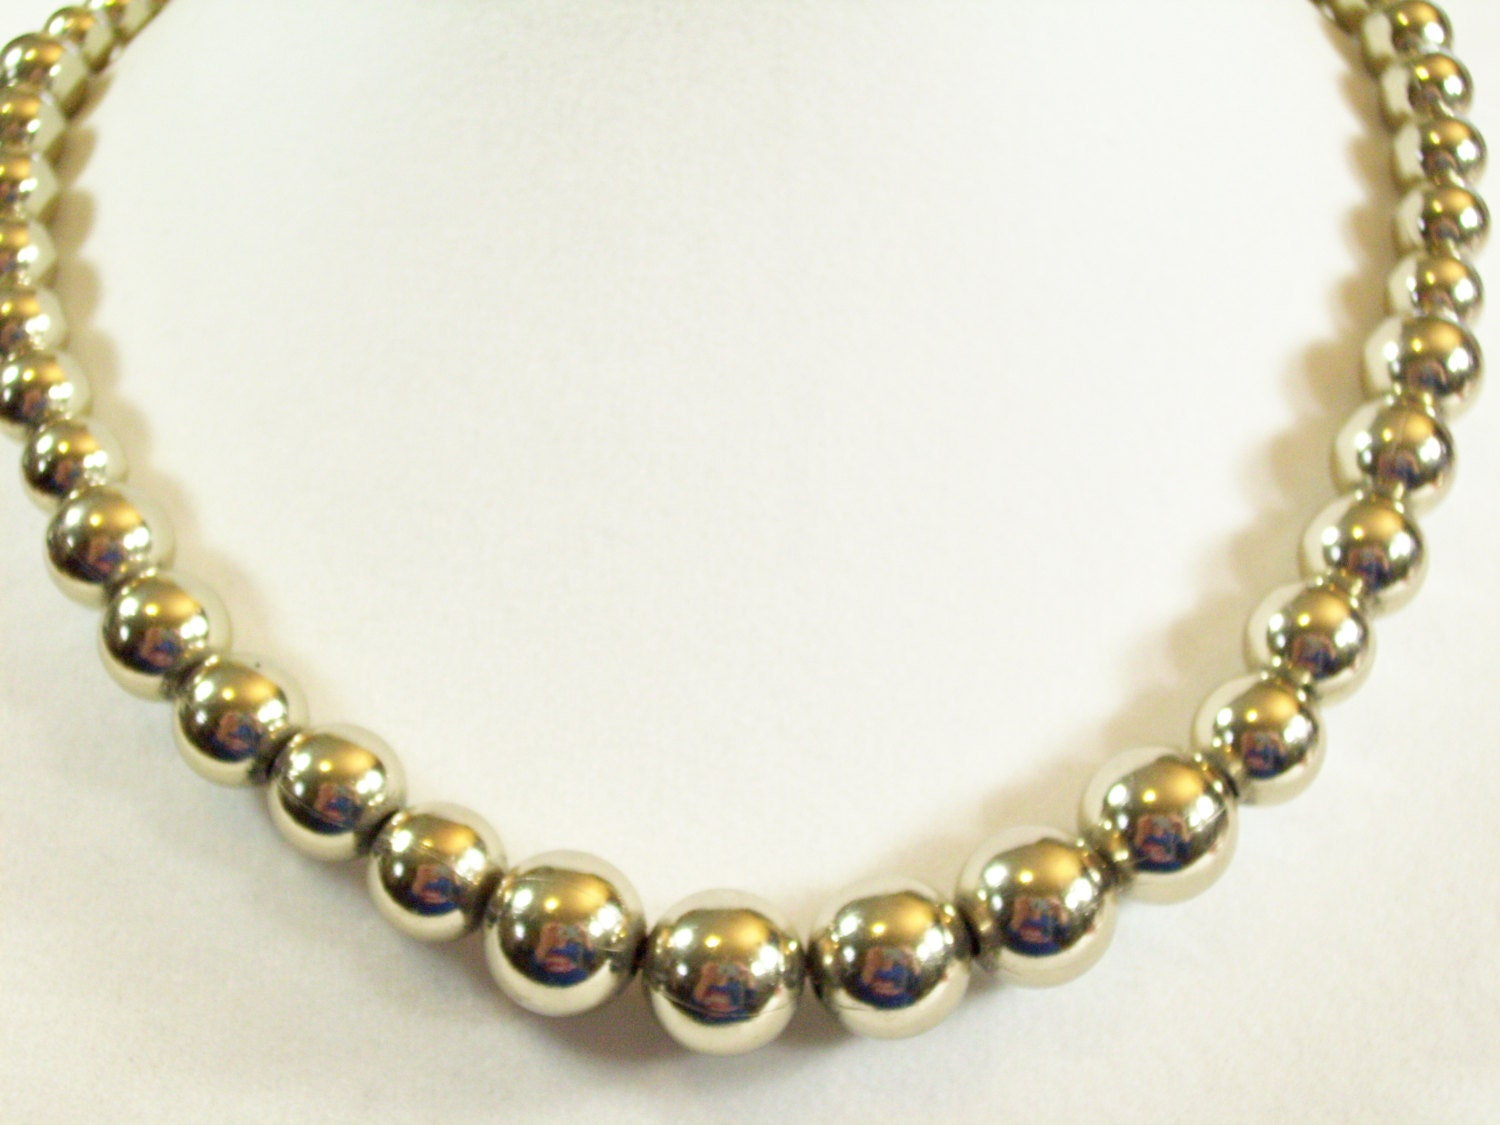 vintage 60s monet gold plated necklace chain